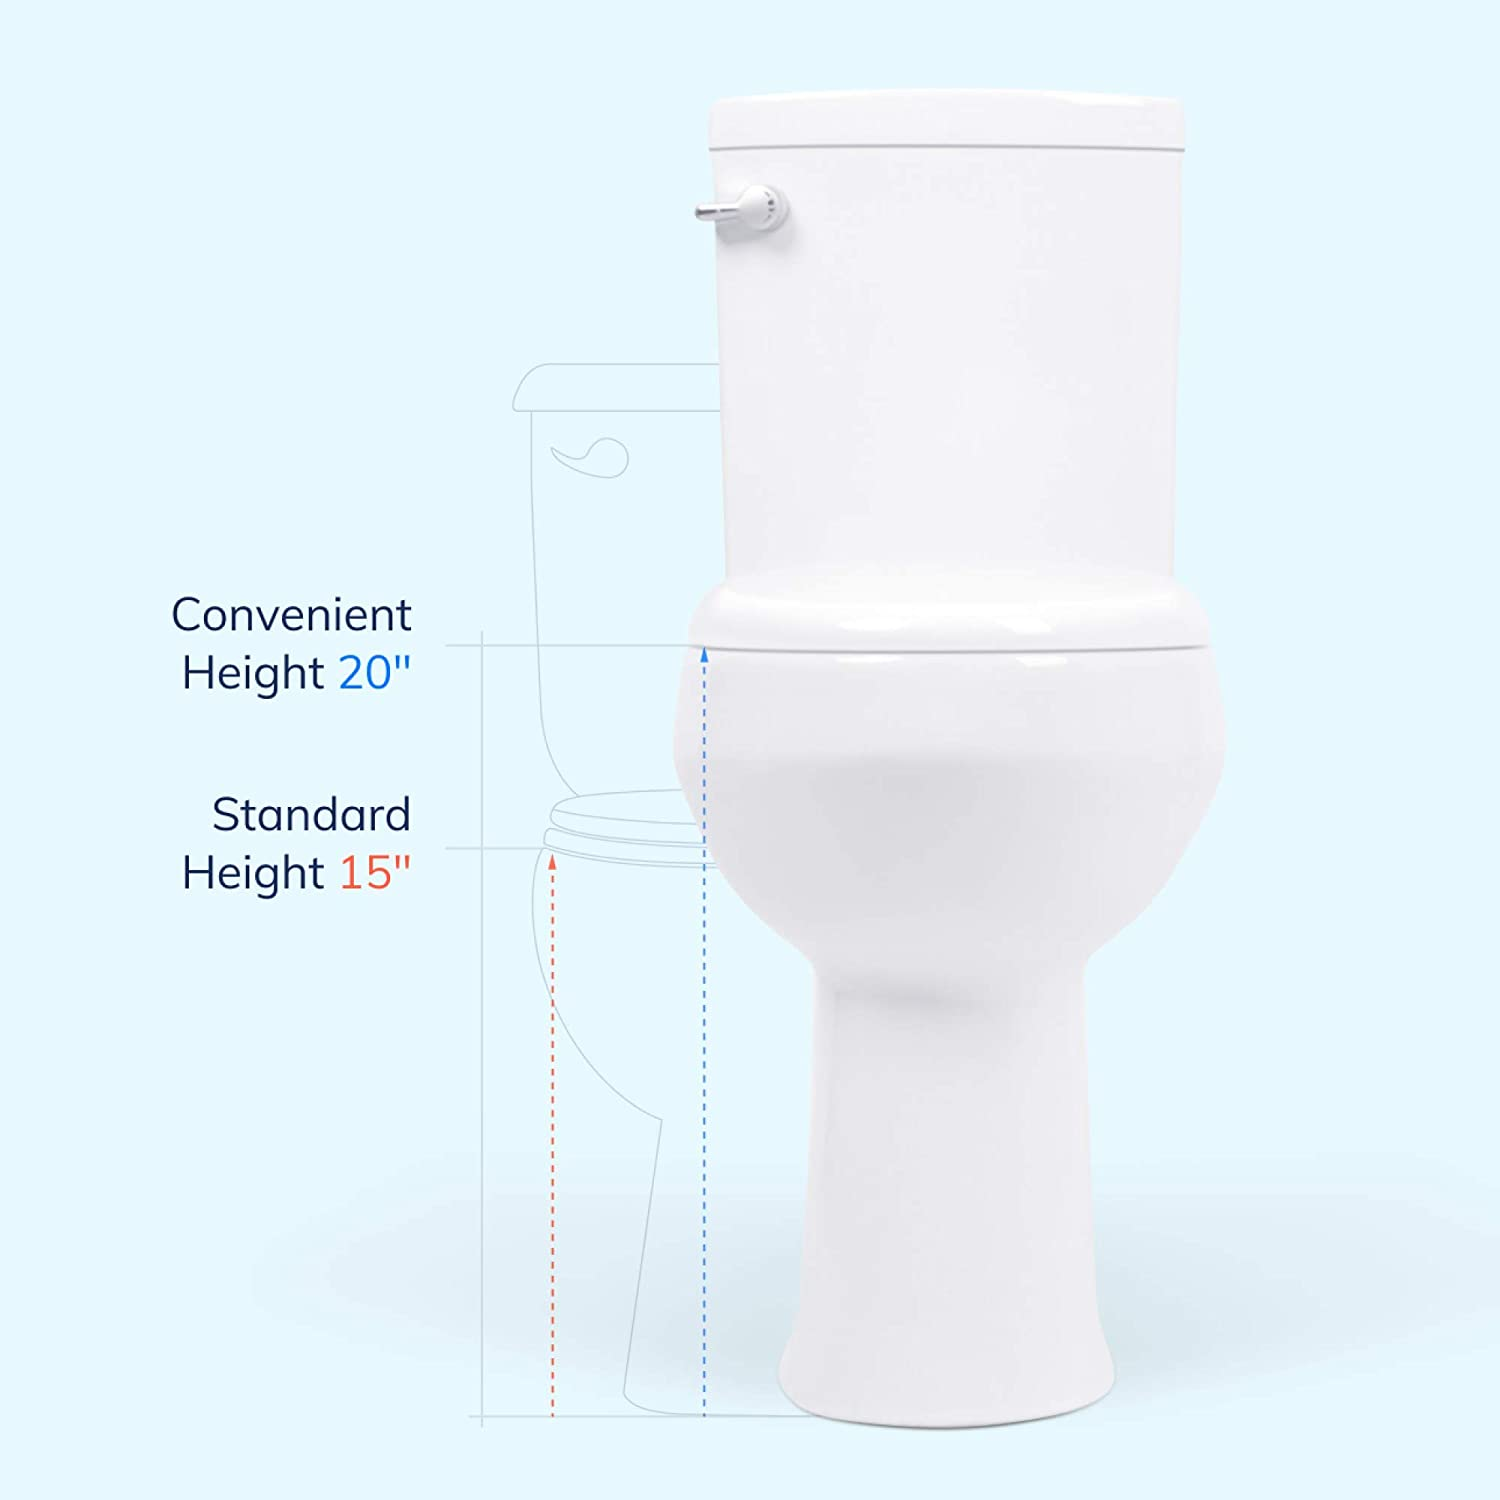 20 inch Extra Tall Toilet. Convenient Height bowl taller than ADA Comfort  Height. Dual flush, Metal handle, Slow-close seat - - Amazon.com